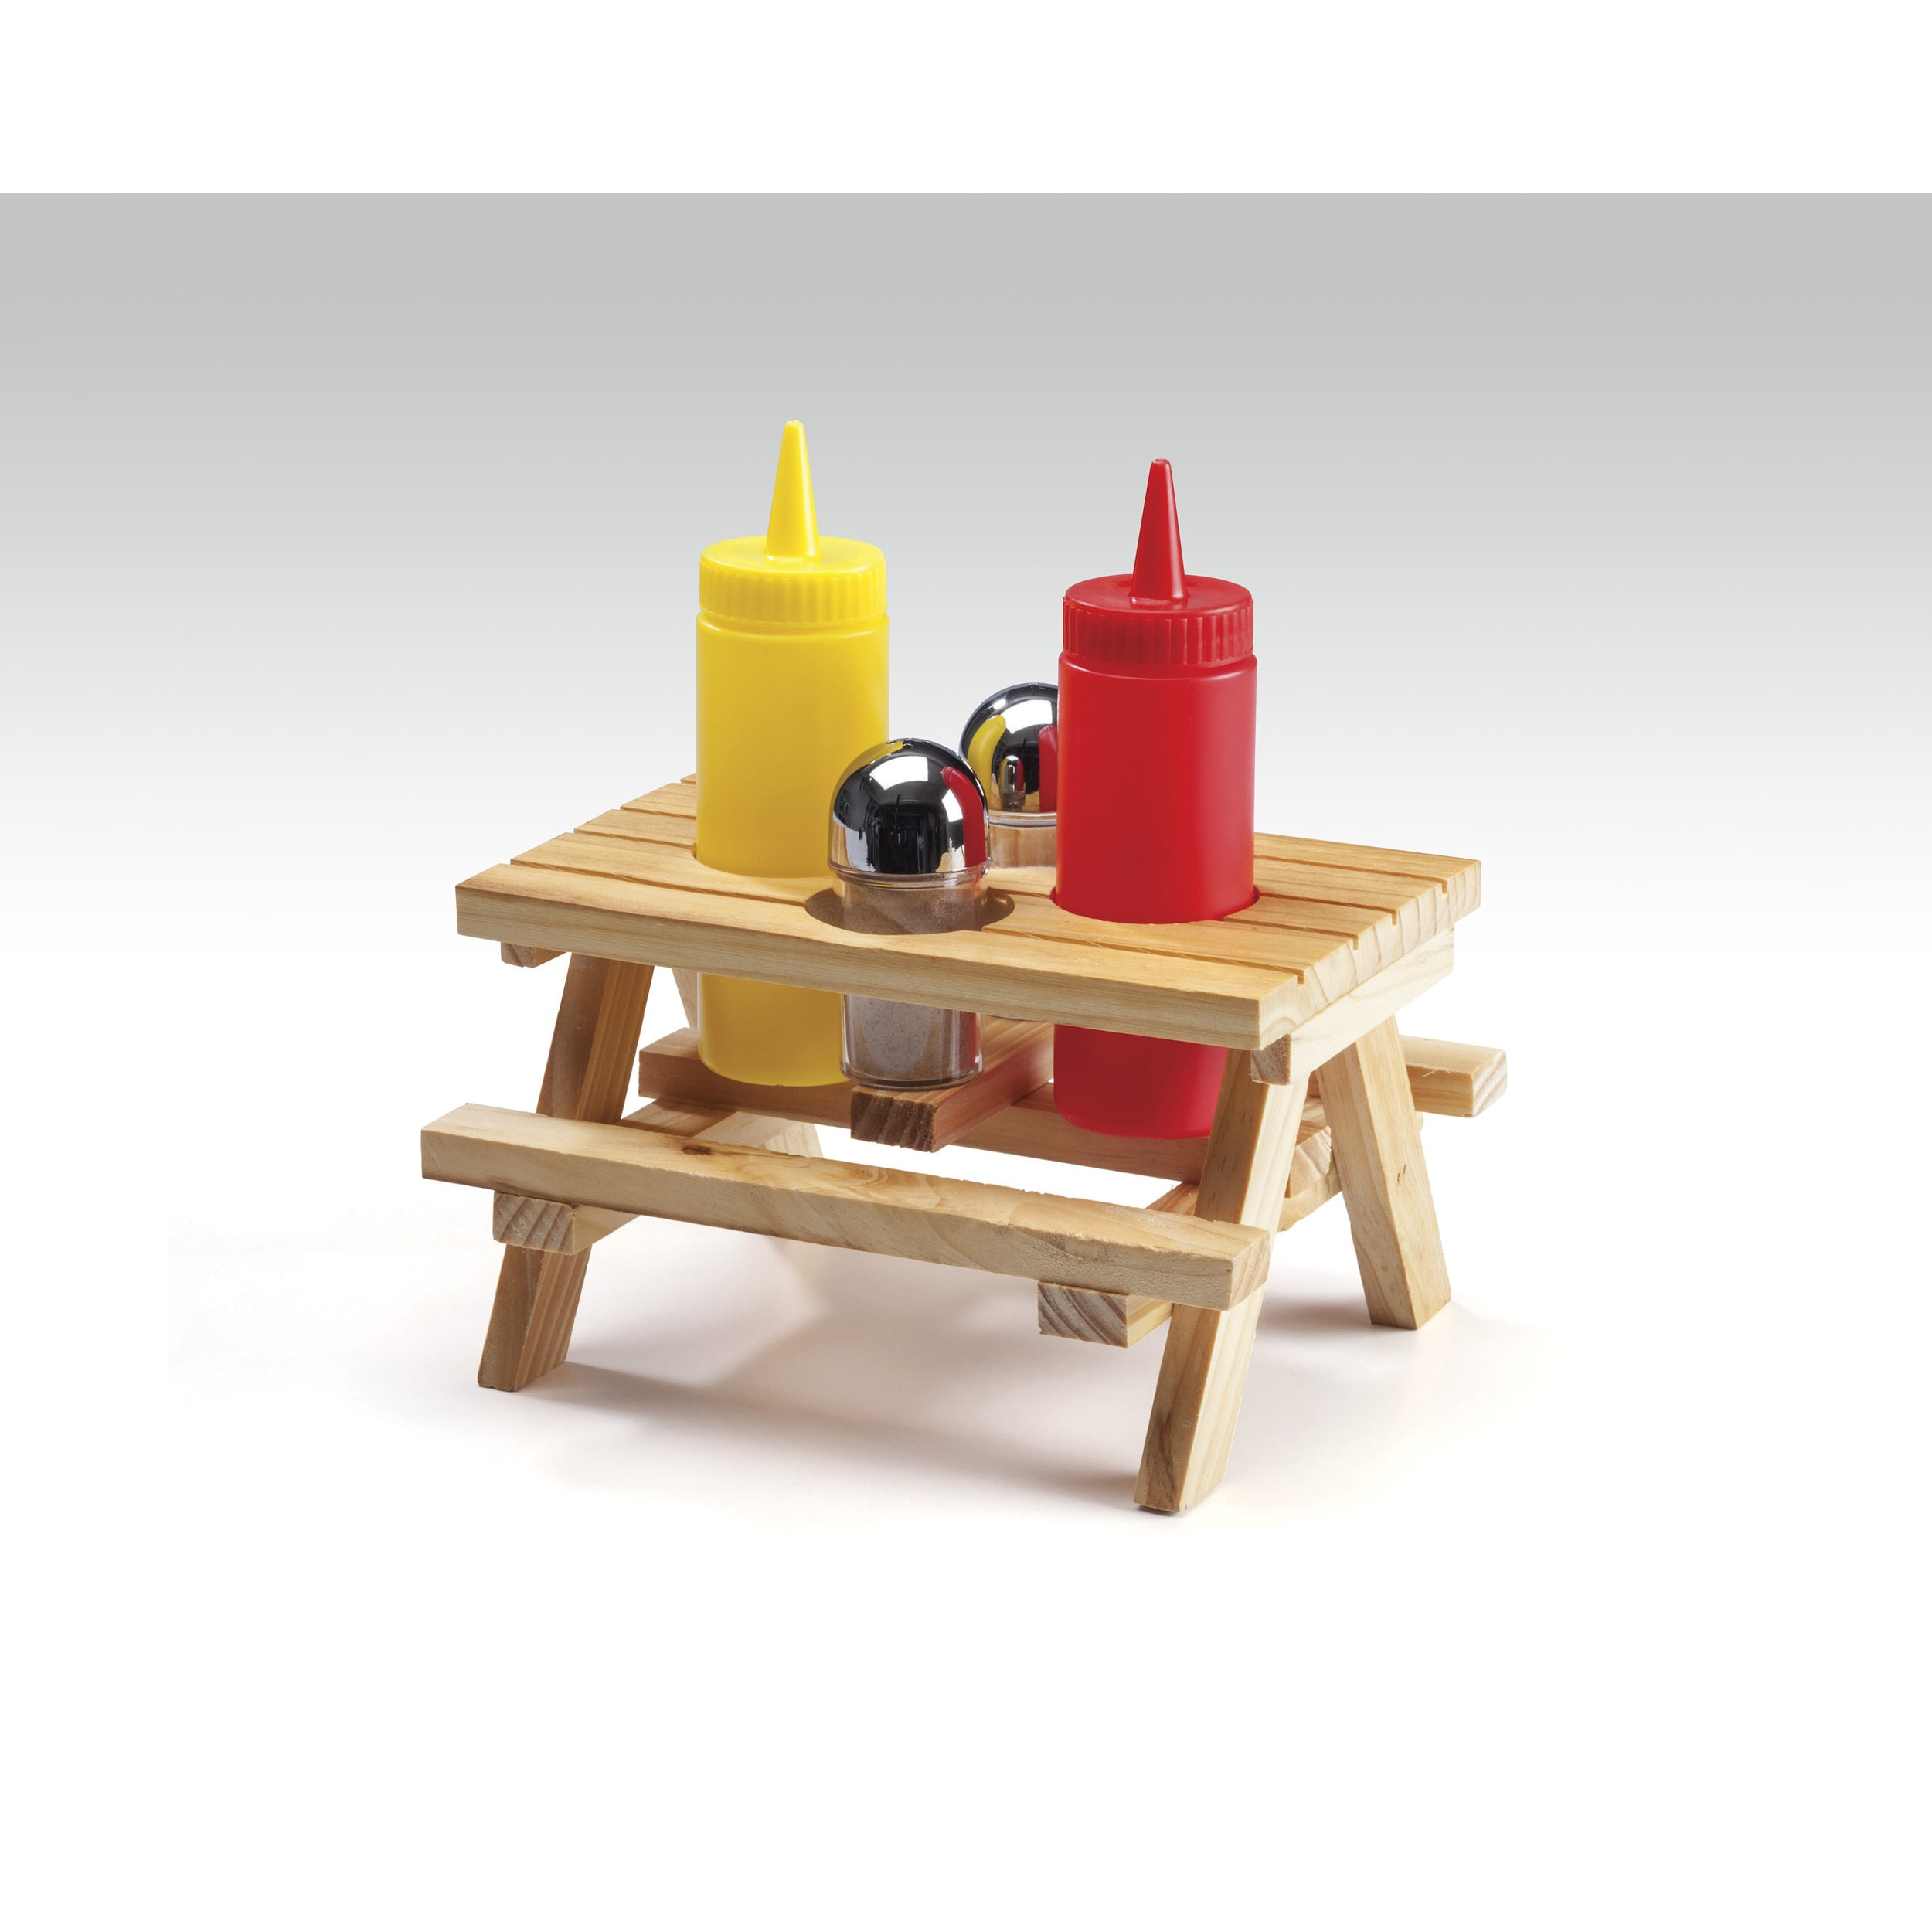 Wood Picnic Table Condiment Set - Free Shipping On Orders Over $45 - Overstock - 19730620  sc 1 st  Overstock.com & Wood Picnic Table Condiment Set - Free Shipping On Orders Over $45 ...